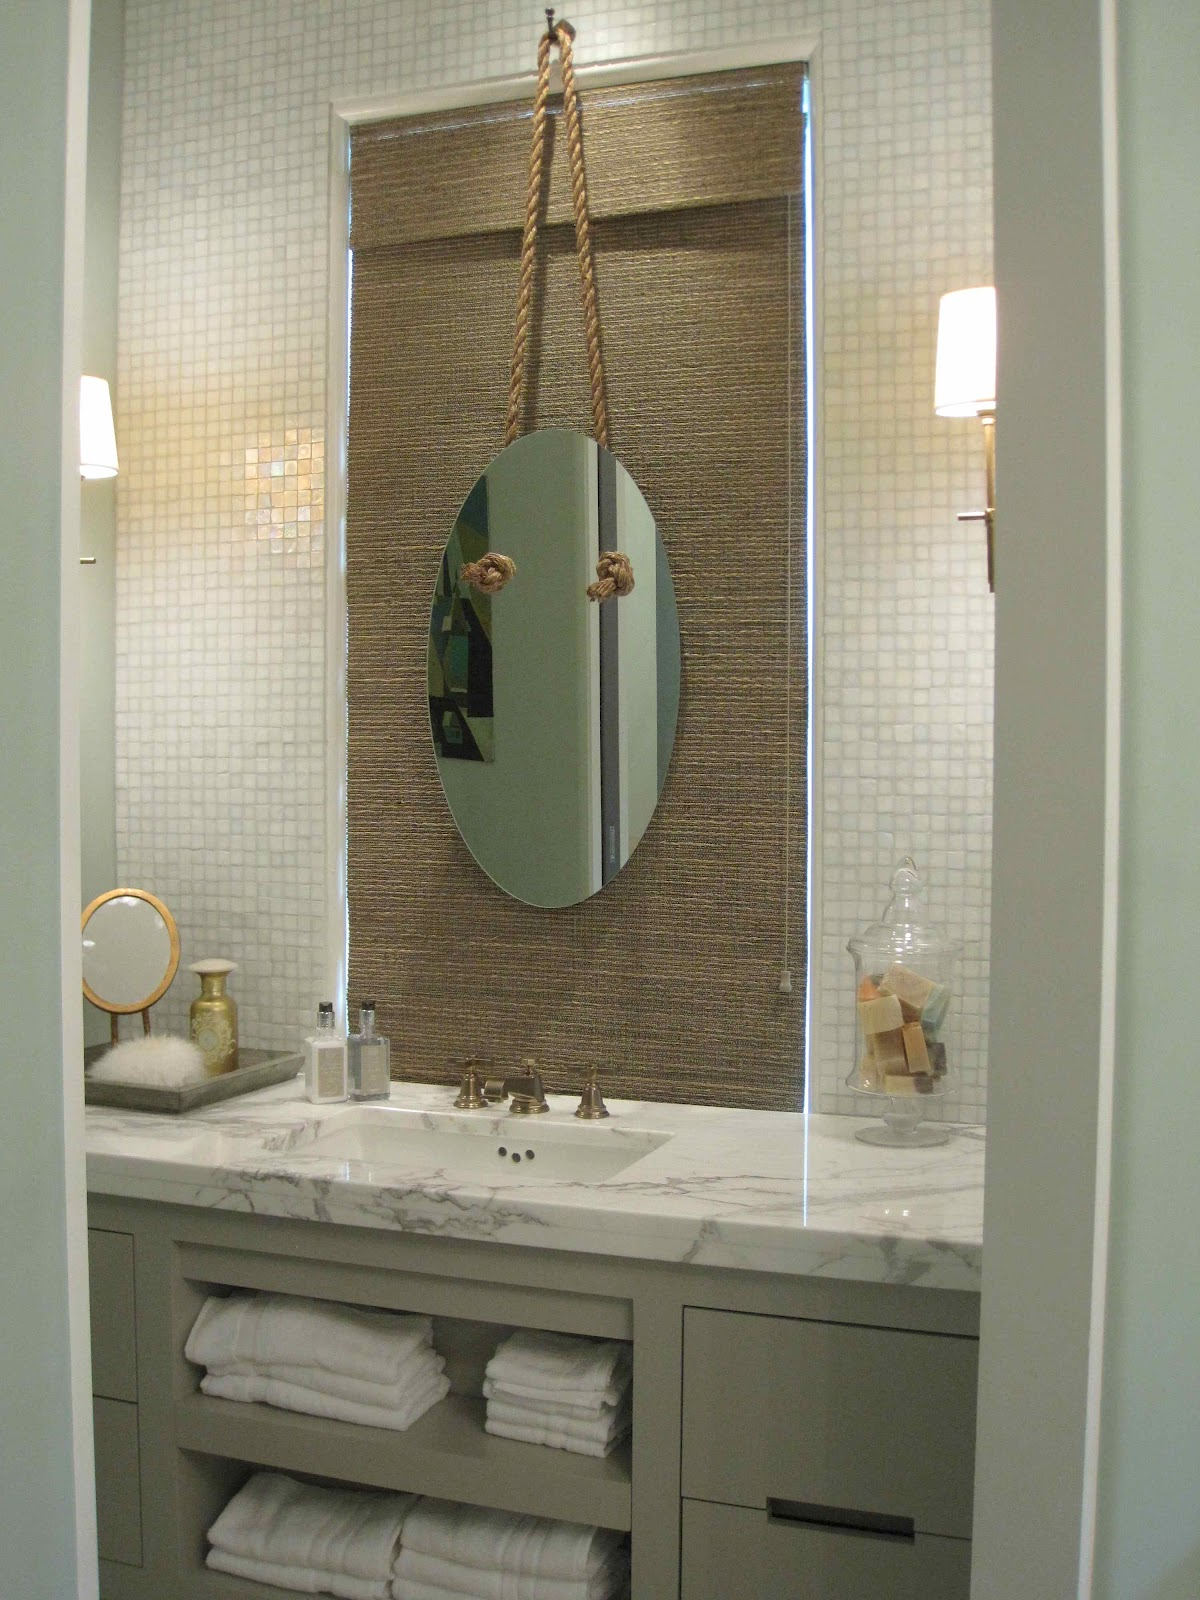 Tour of coastal living 39 s 2012 ultimate beach house for Coastal bathroom design